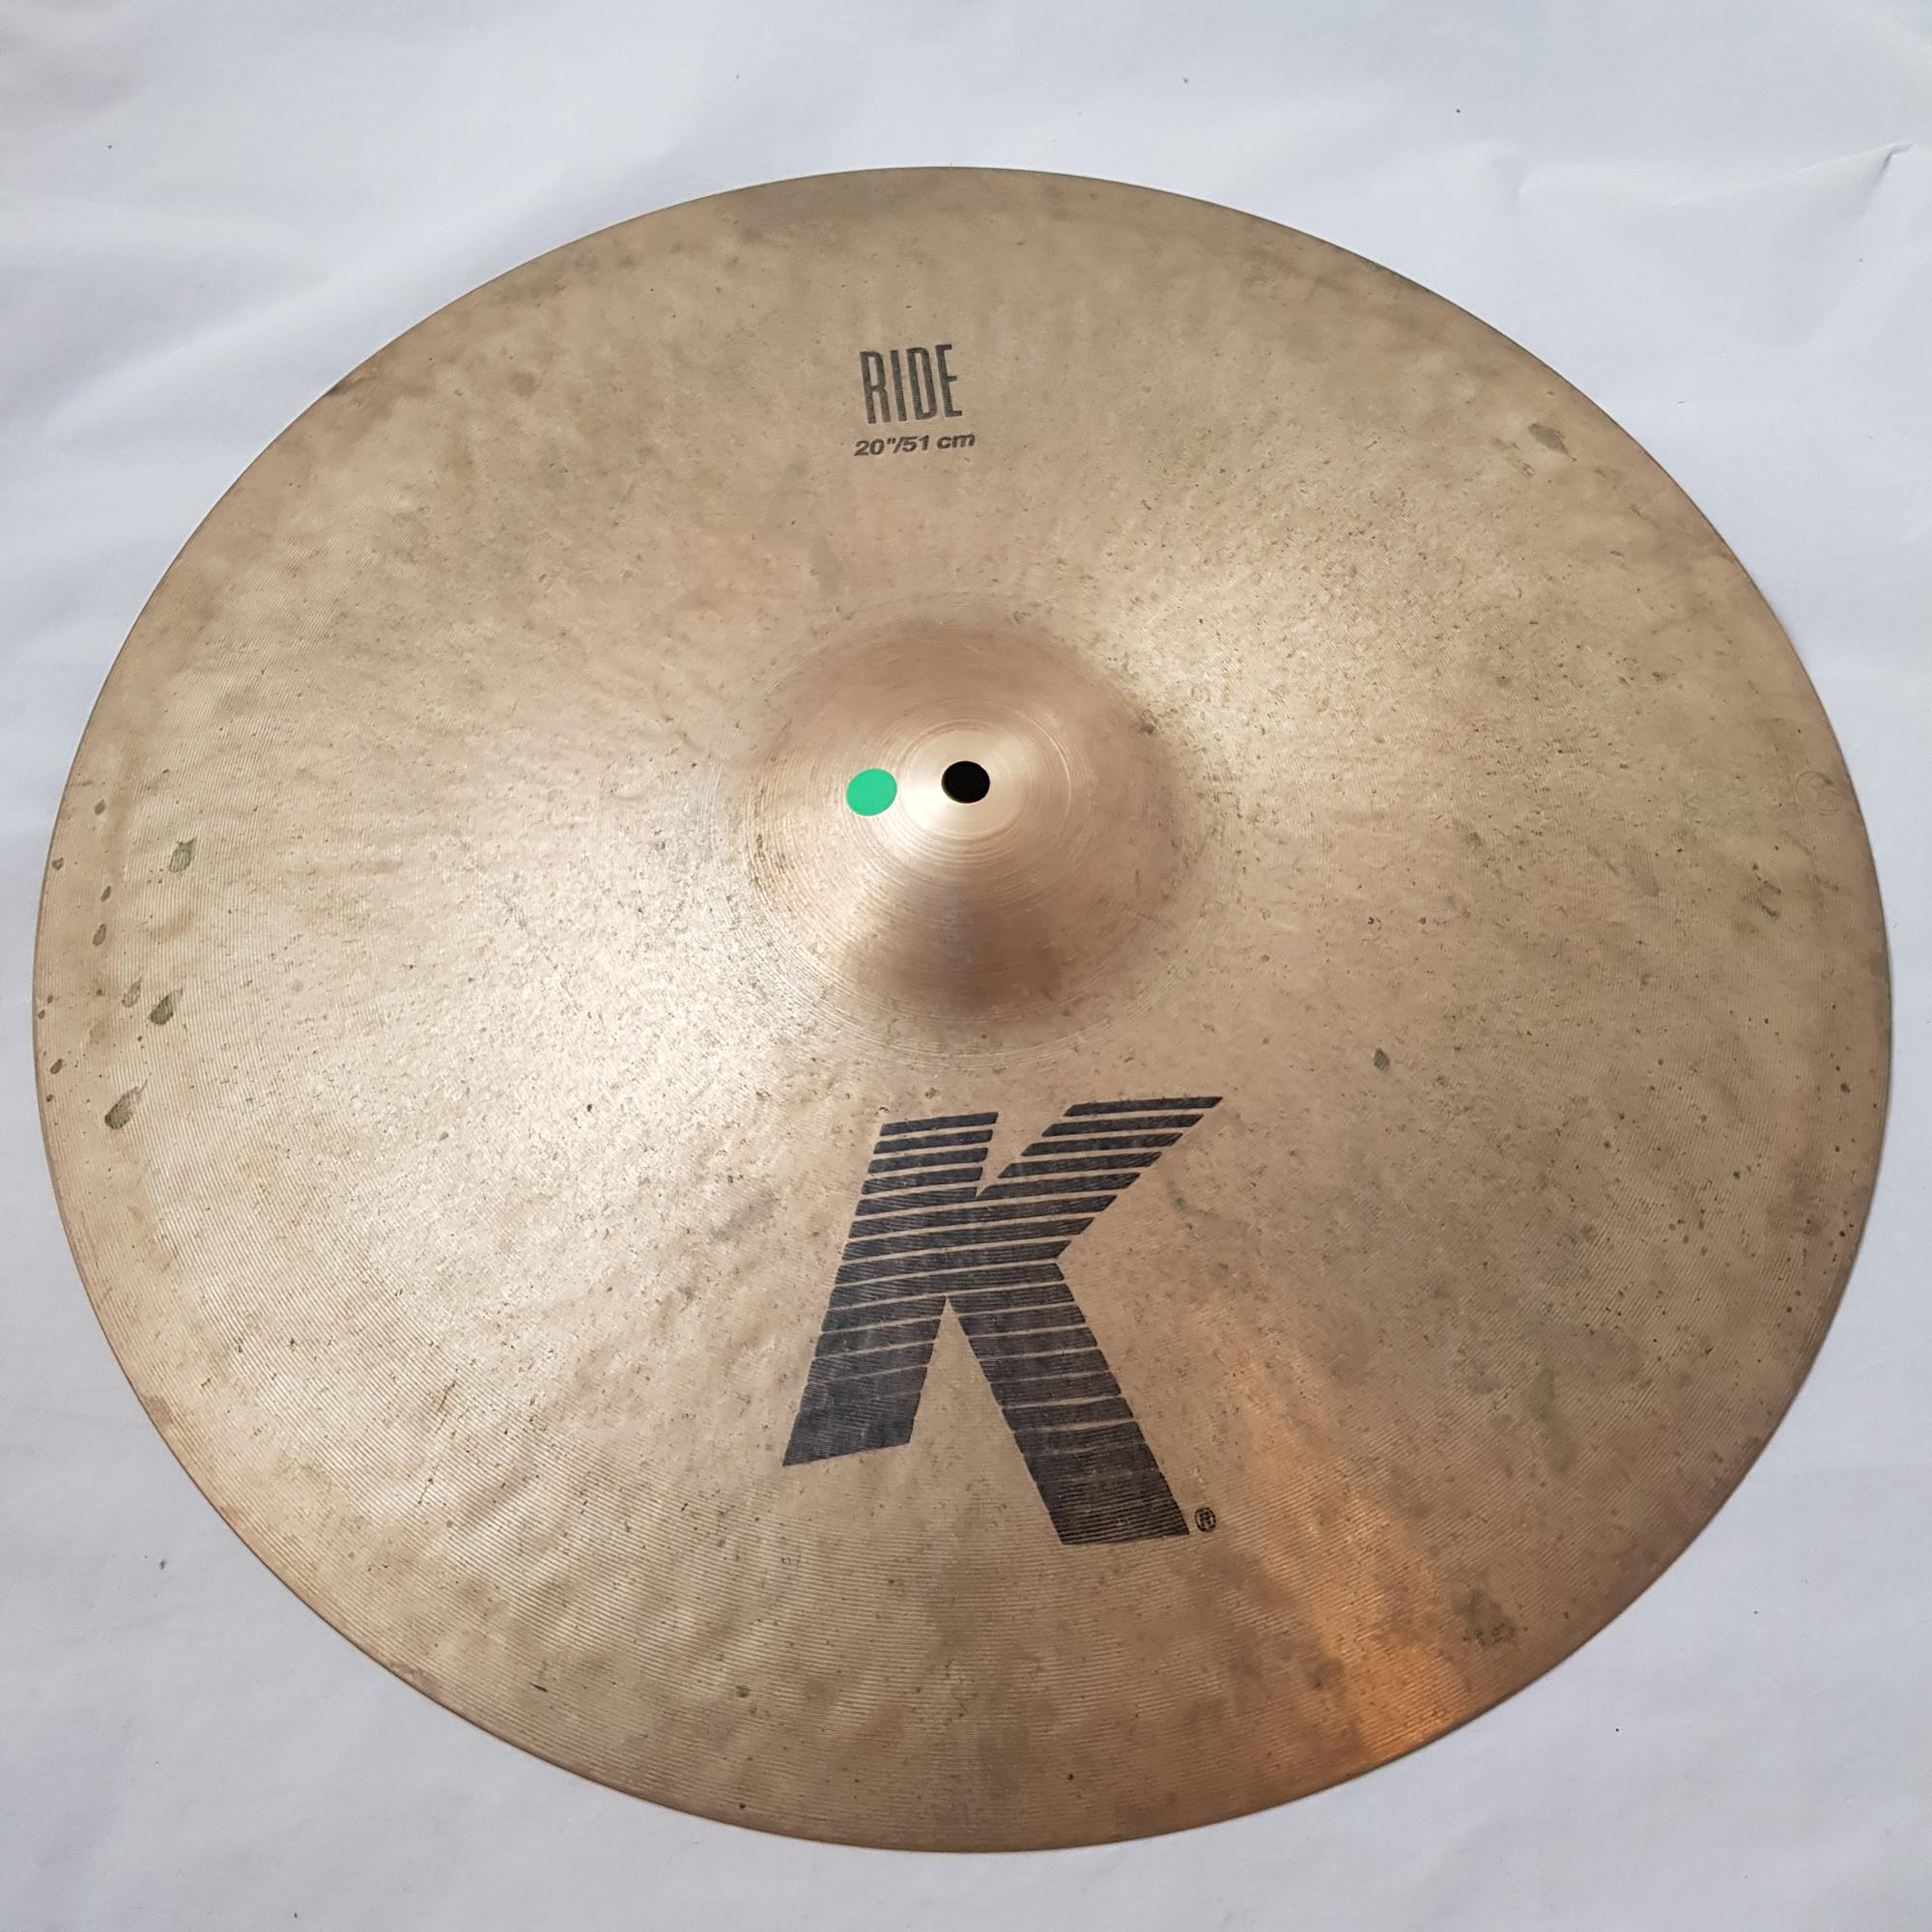 ZILDJIAN-K-RIDE-20-sku-1607787687419